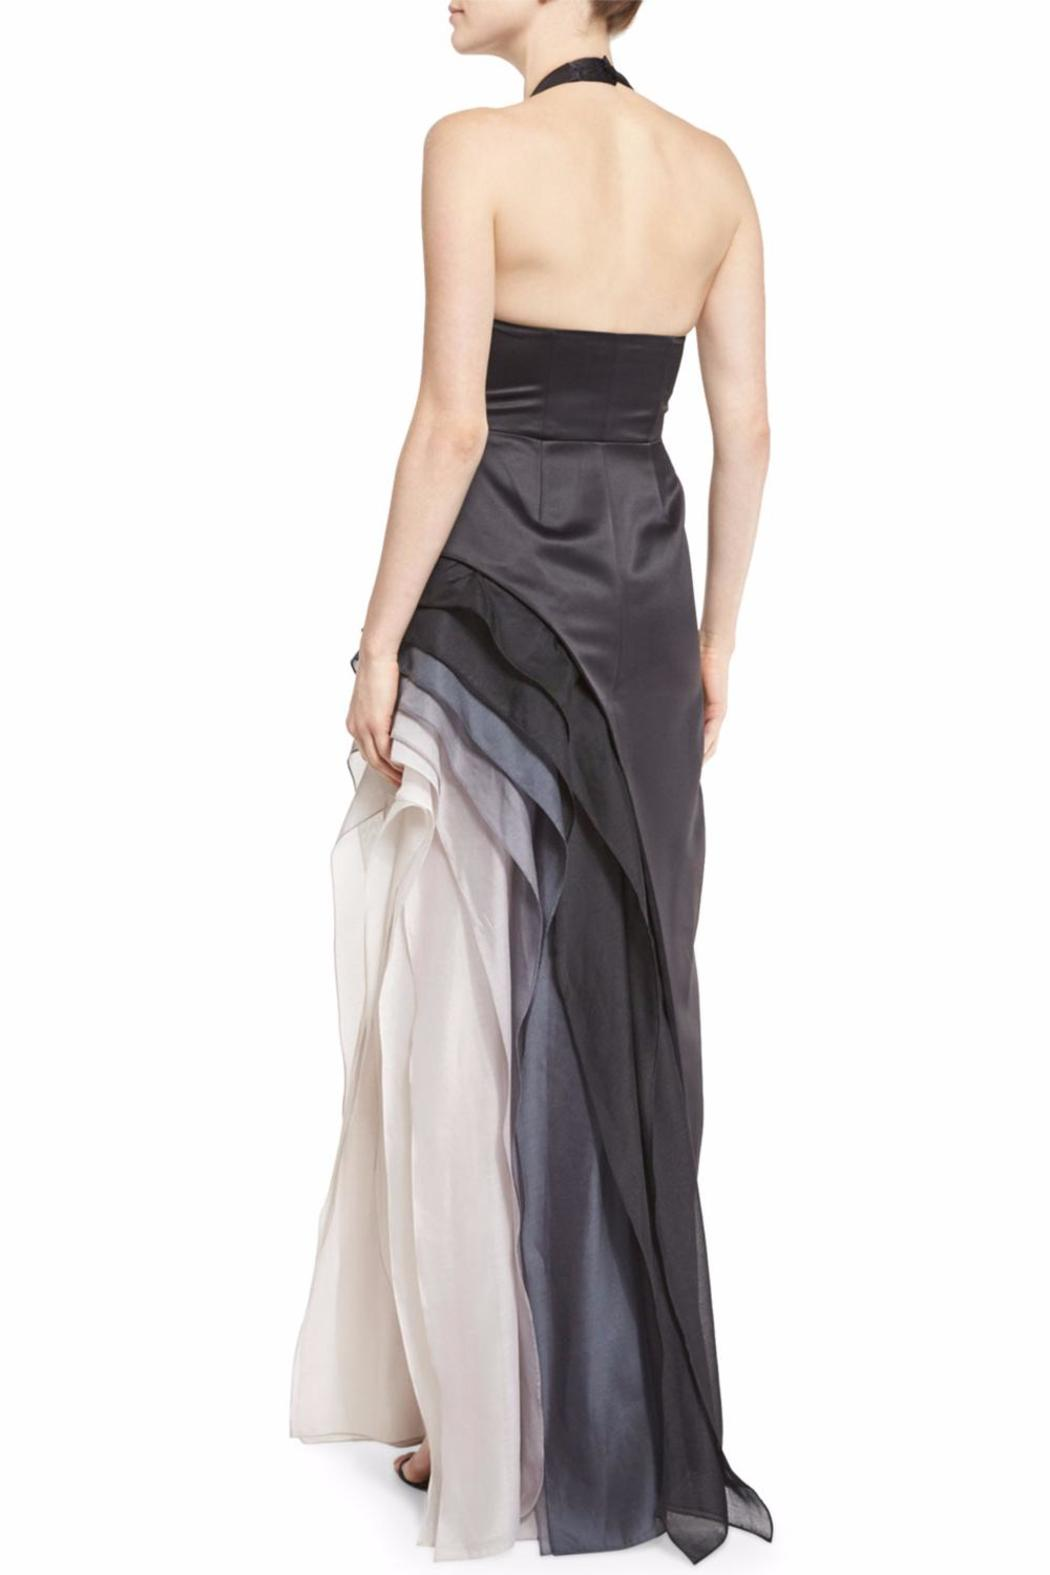 Halston Heritage Ombre Halter Gown from New Jersey by District 5 ...